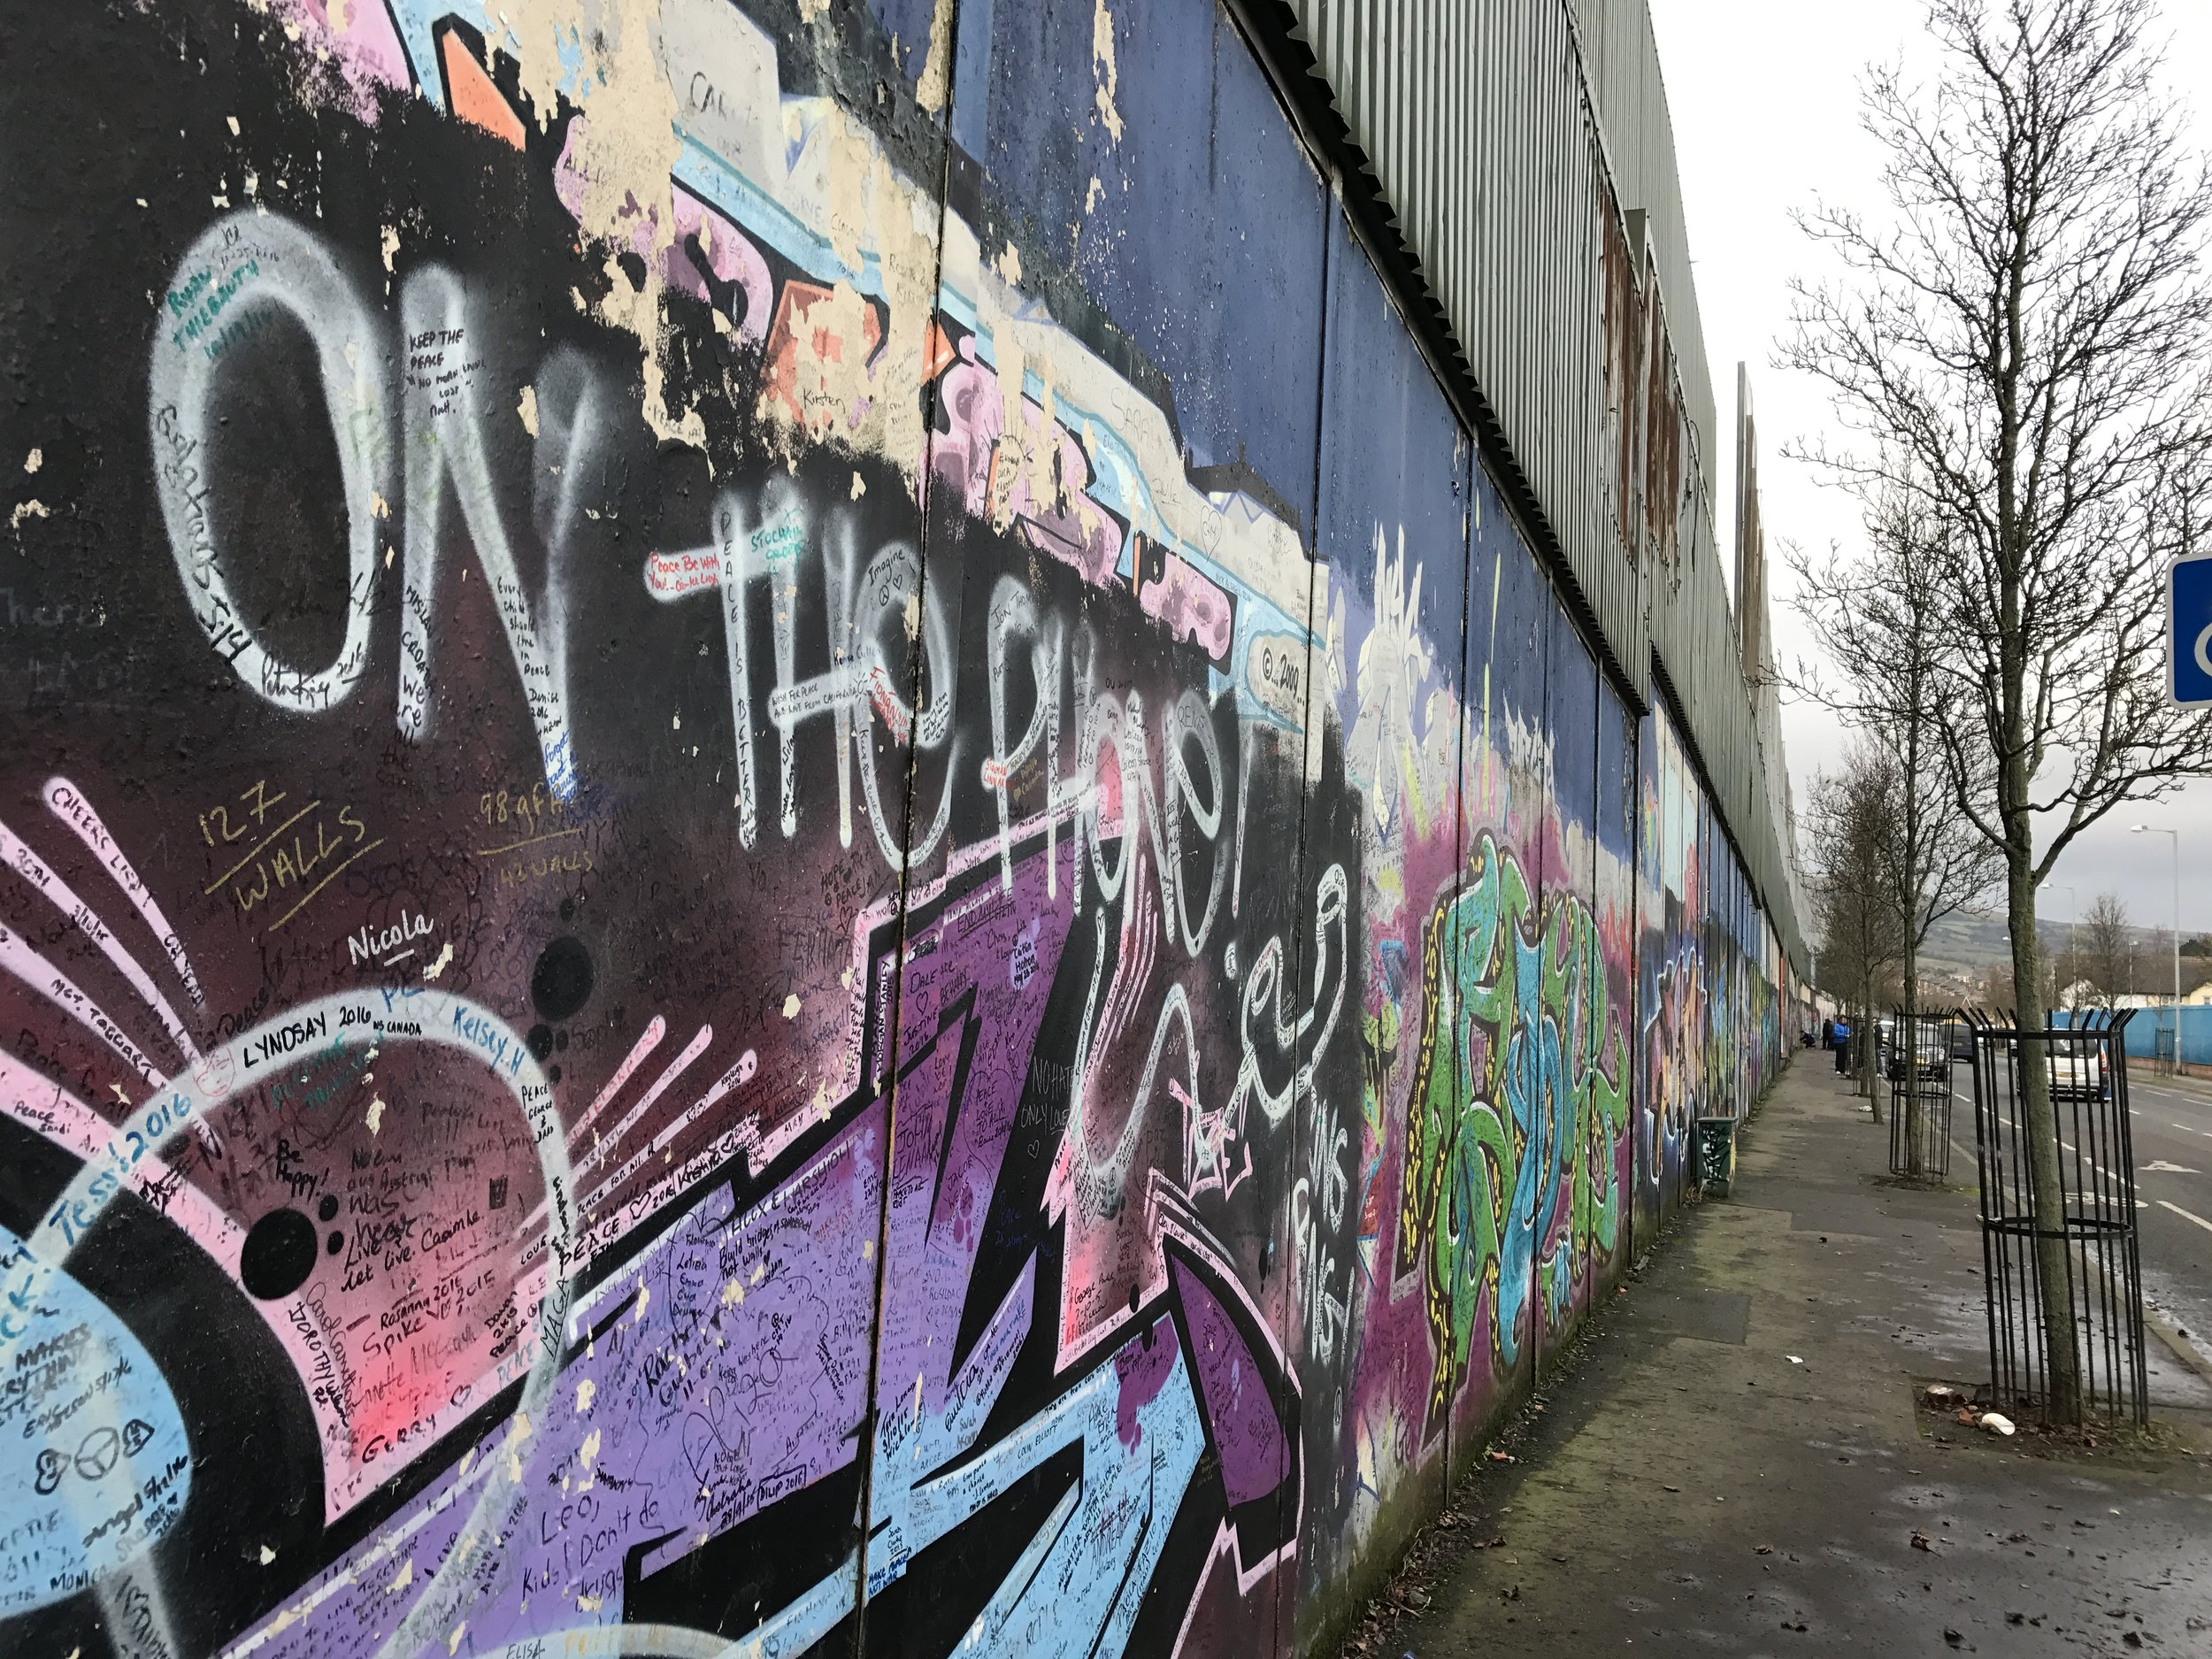 A peace wall in Belfast, diving neighborhoods to reduce violence.